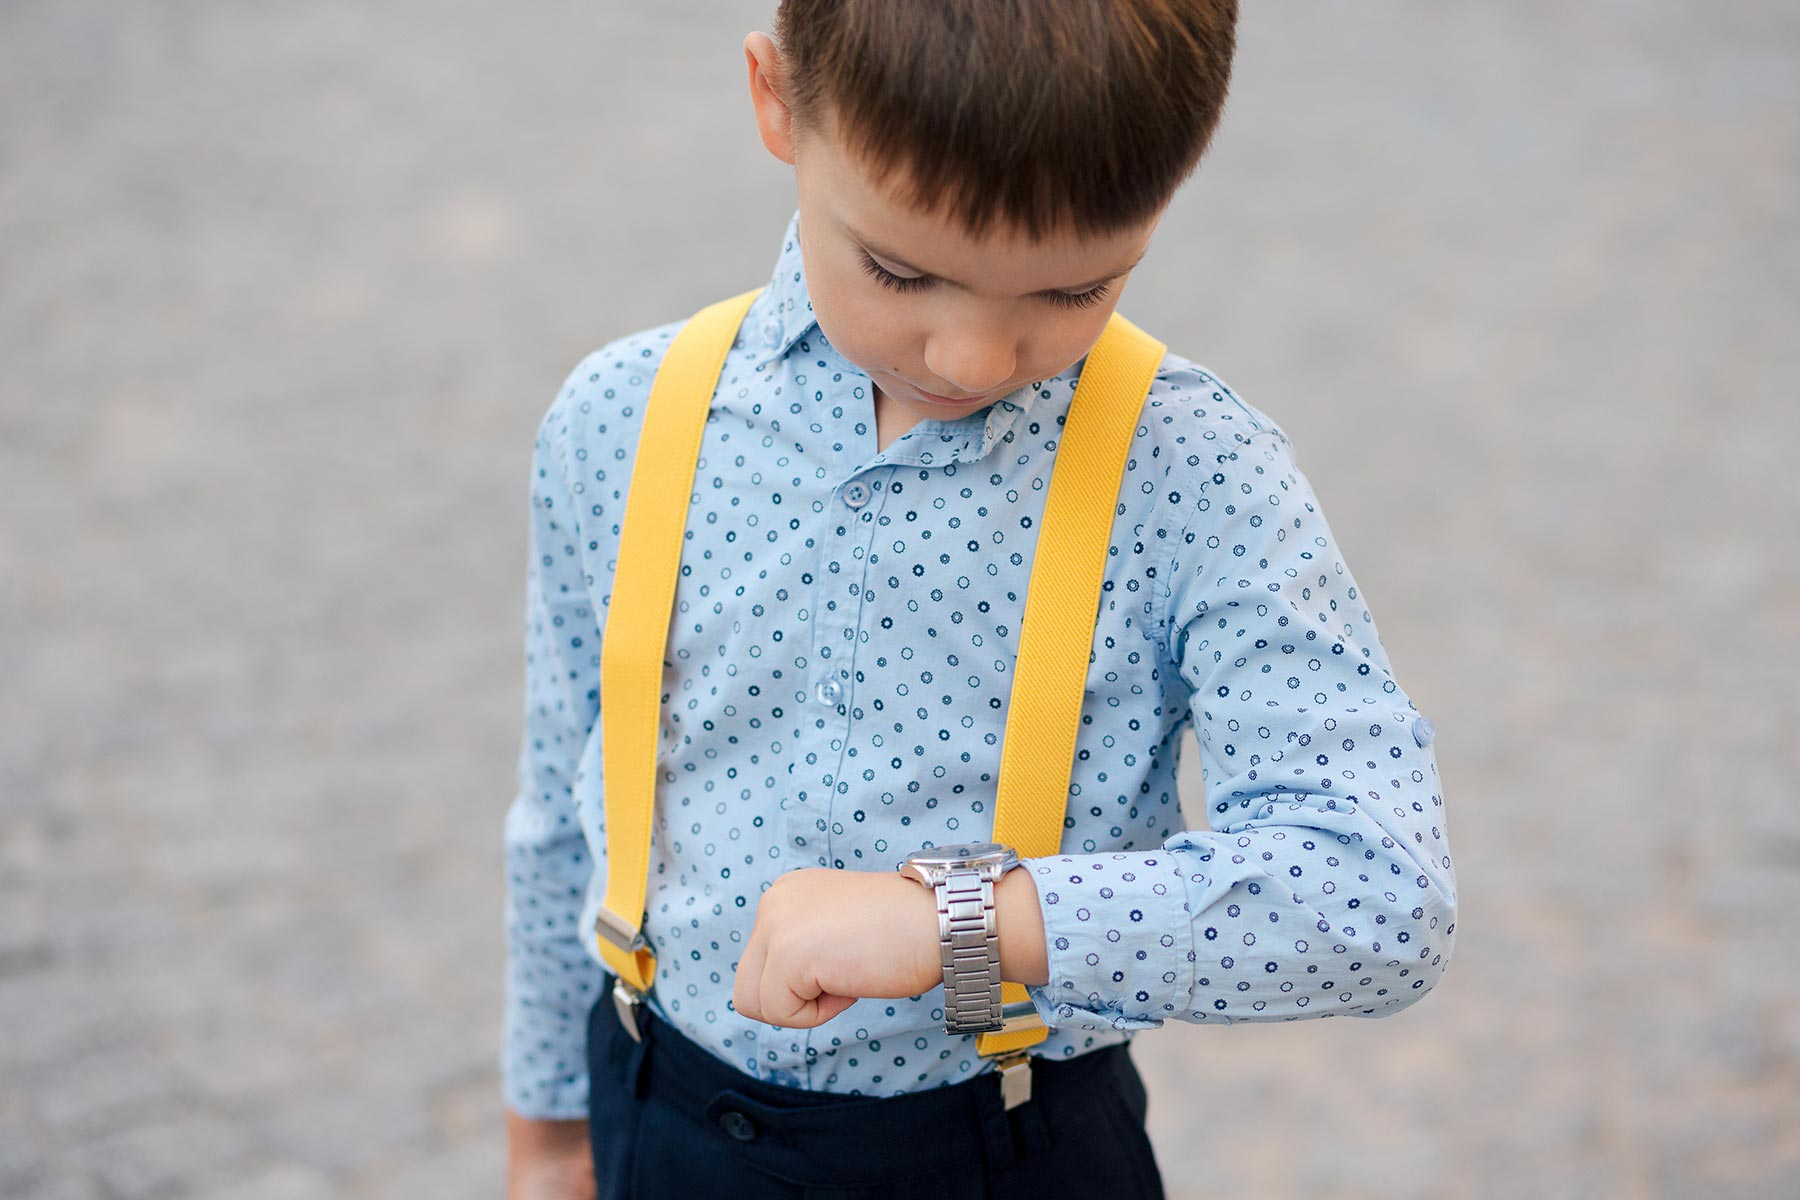 boy-verifying-time-on-his-silver-watch-on-his-hand-Y348Y5G.jpg